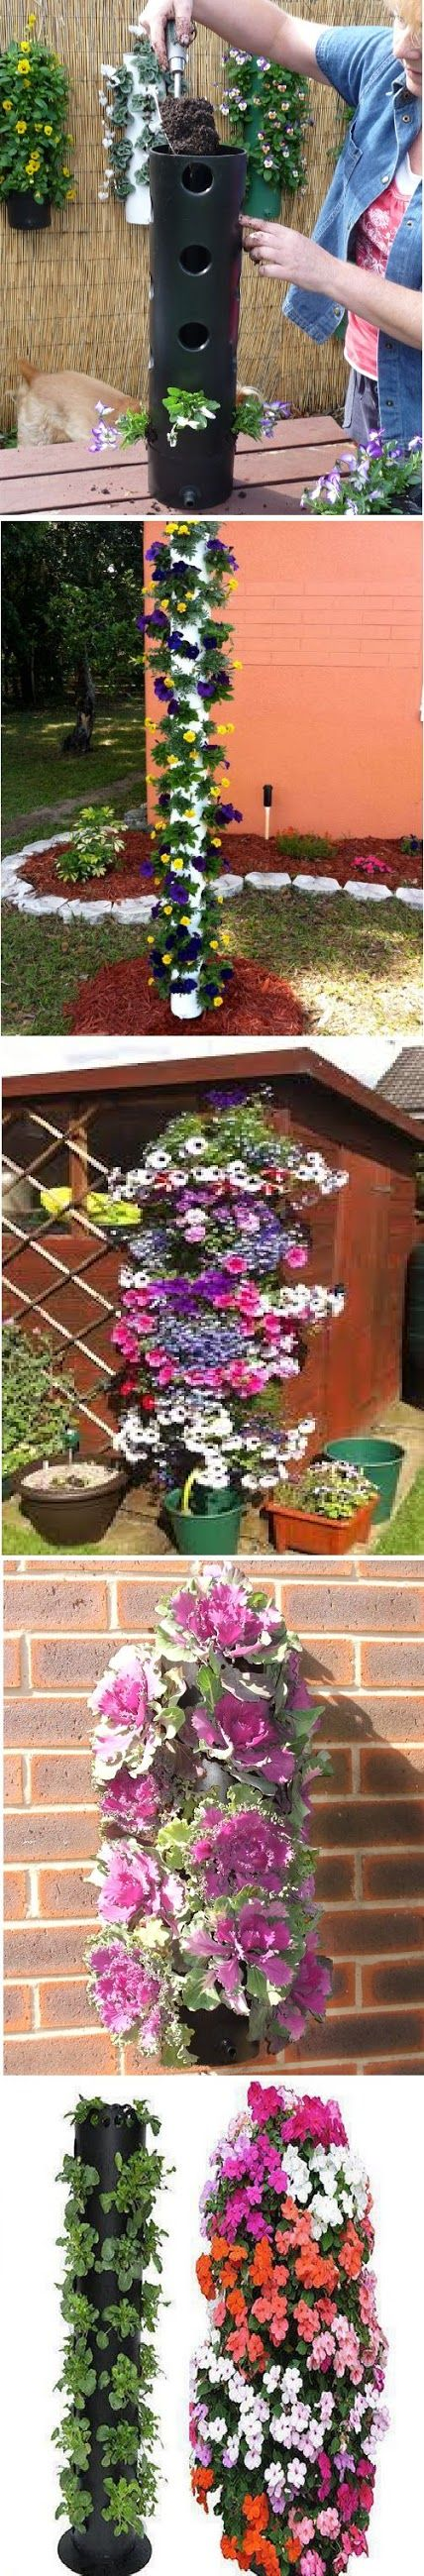 The Polanter Vertical Gardening System is a simple and practical kit and is hung onto walls or fences with the brackets provided. The brac...